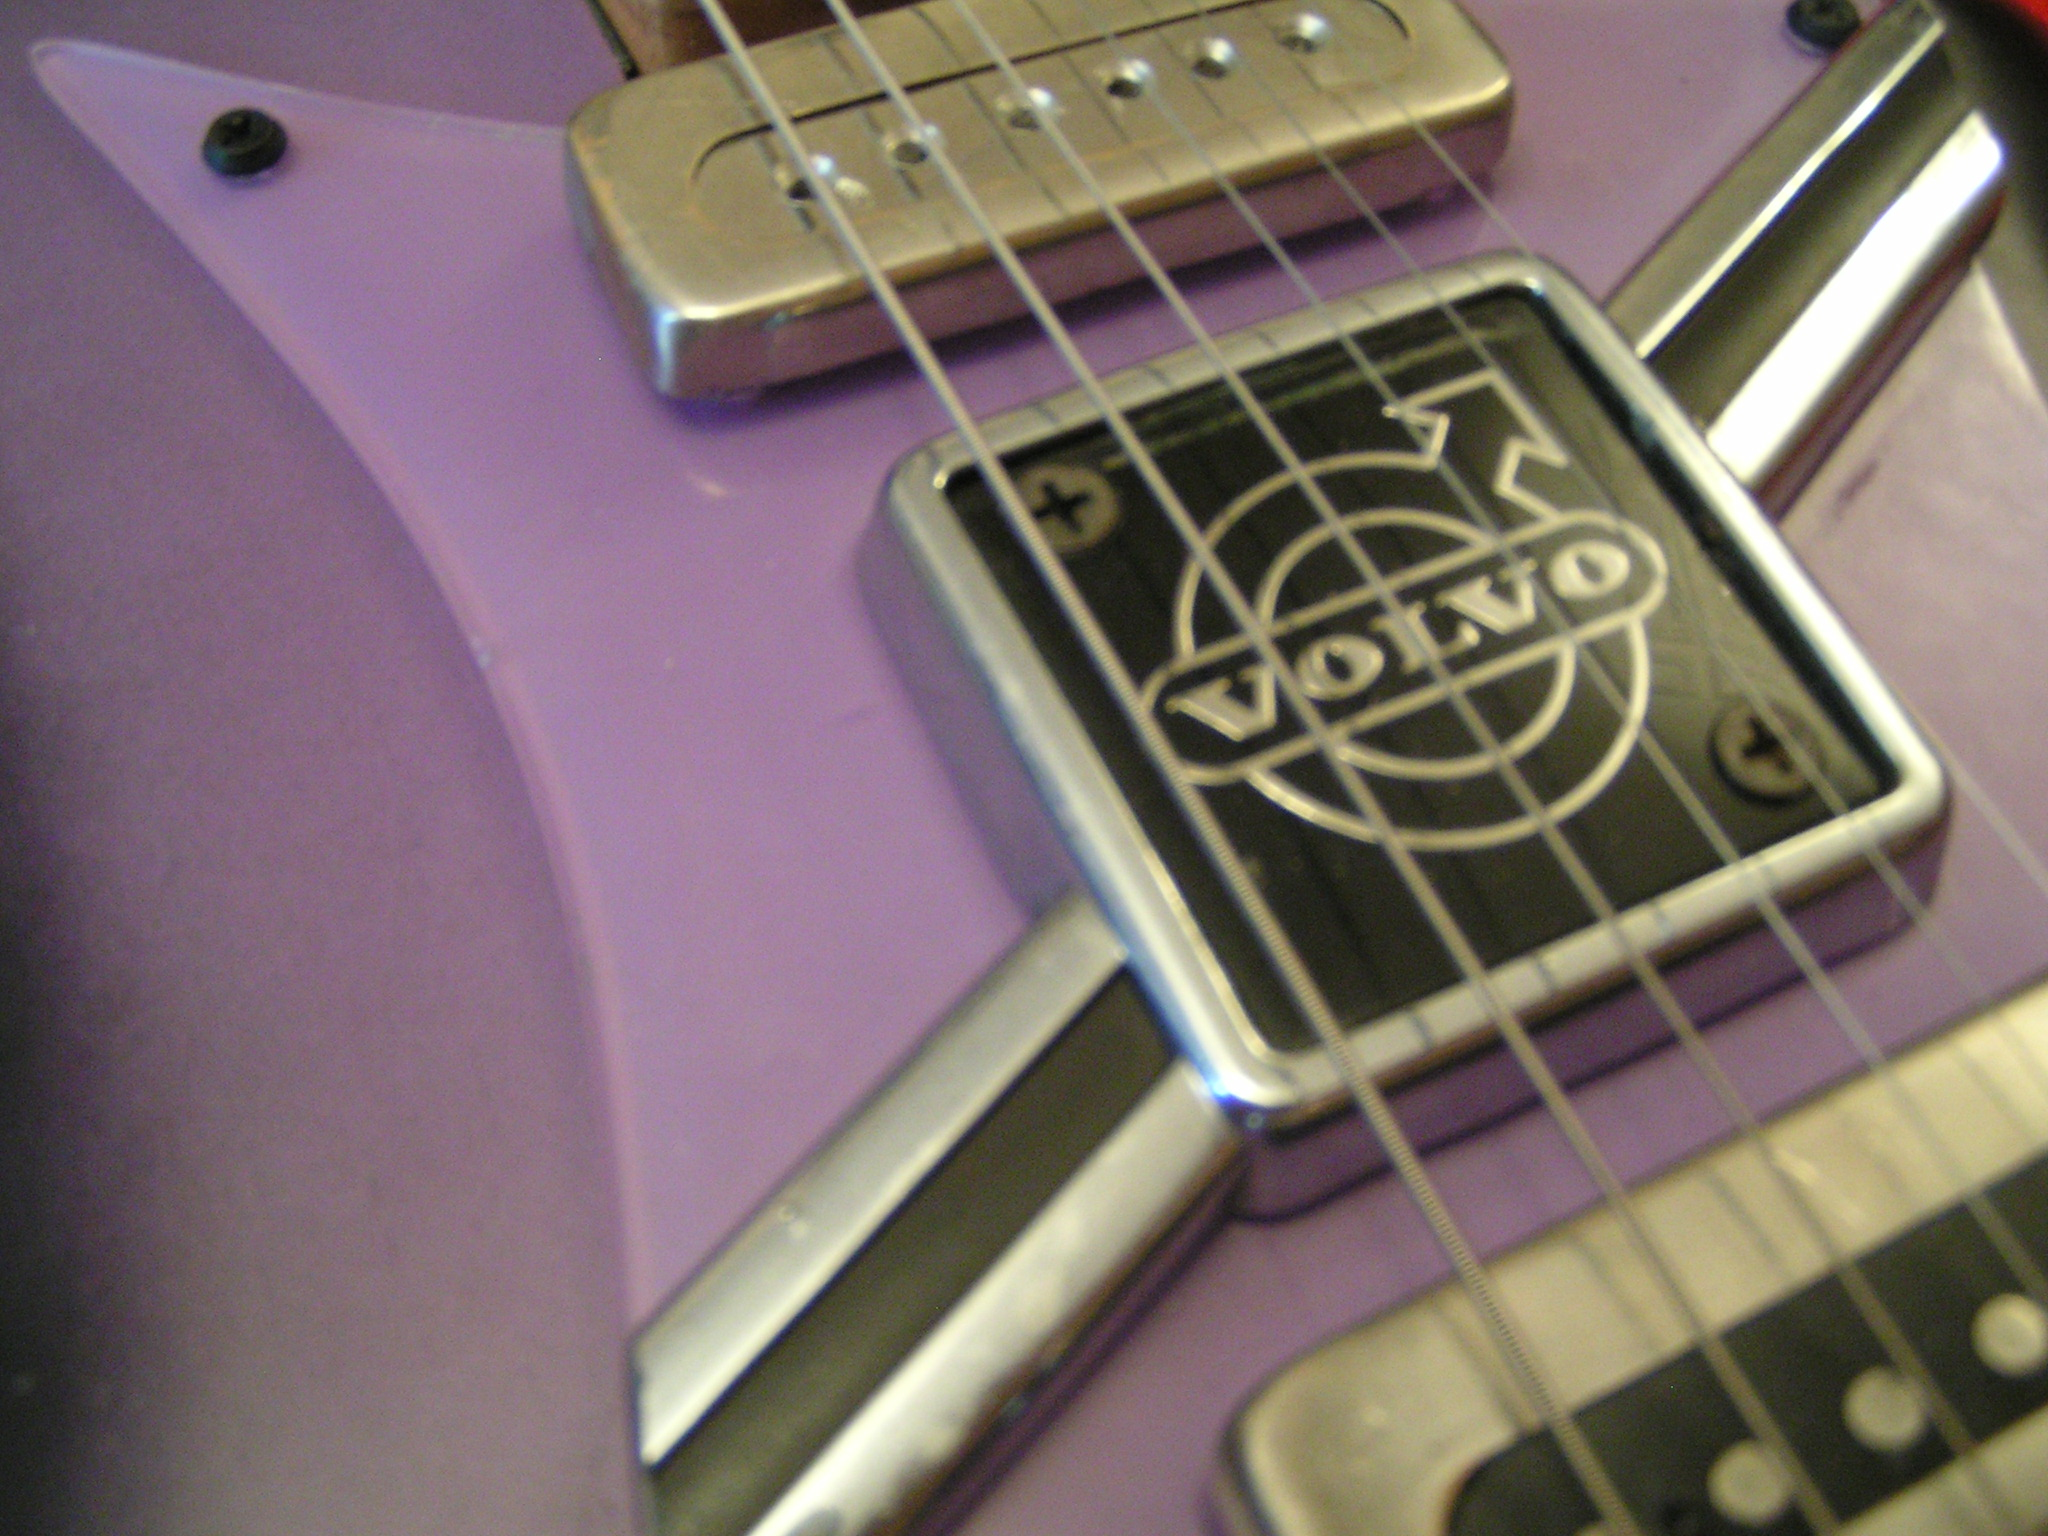 VOLVO guitar project